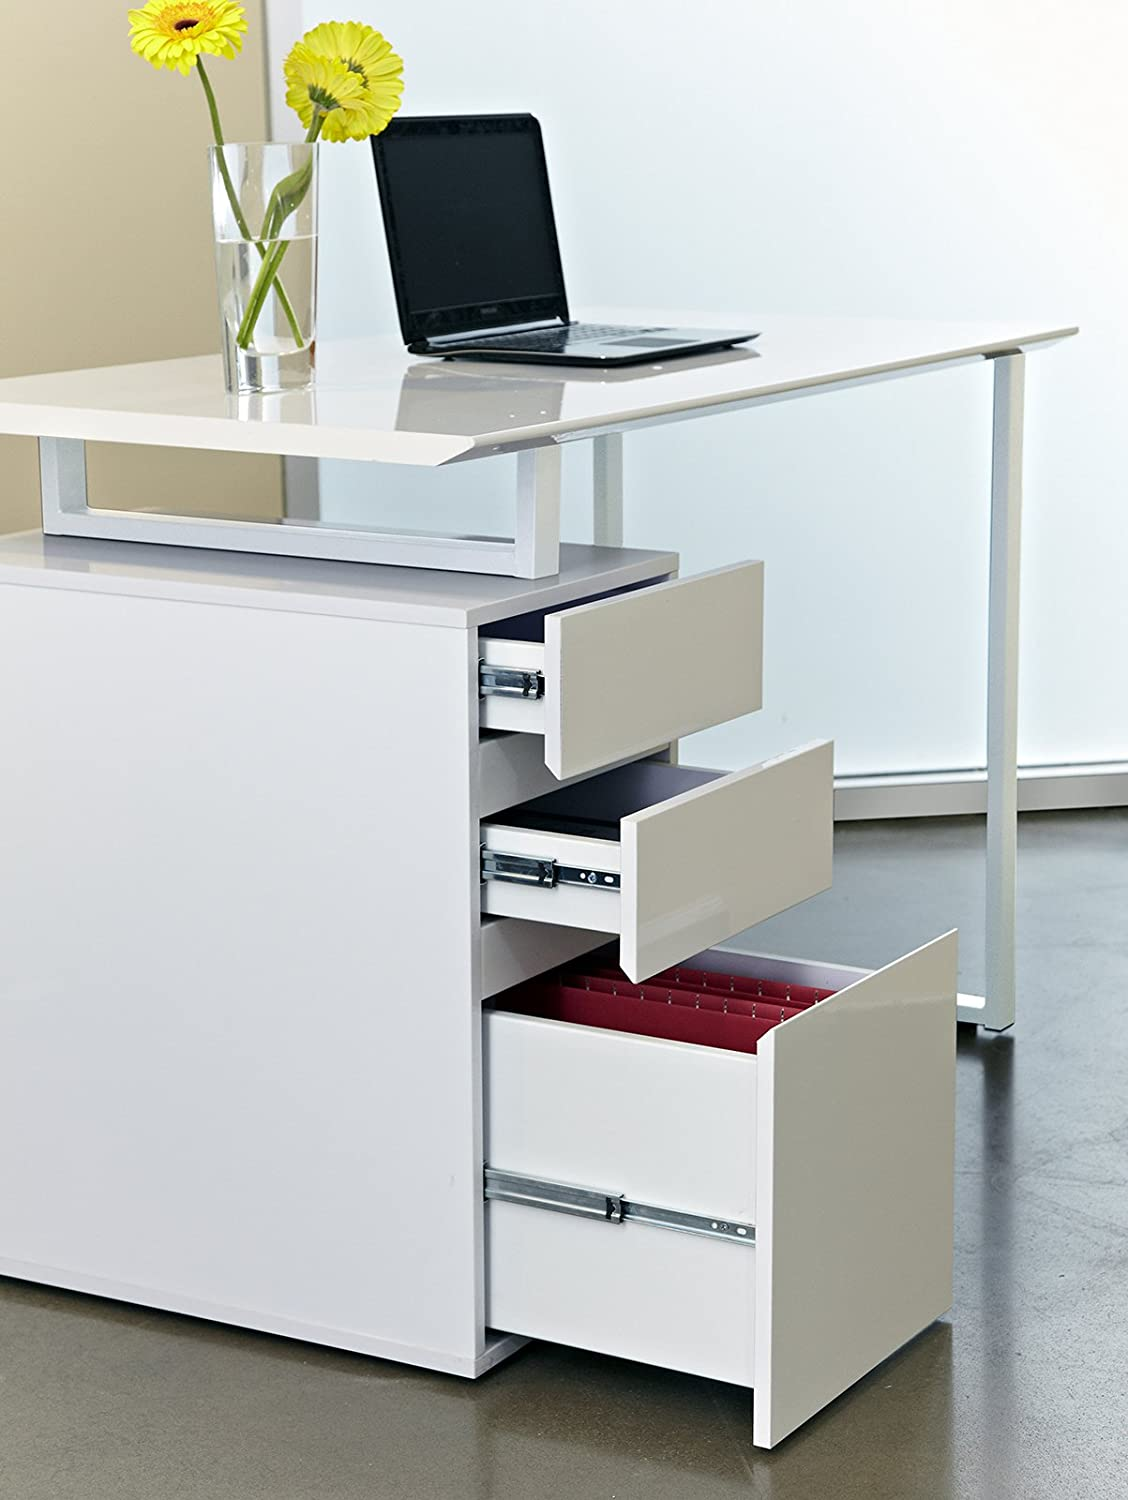 document the pure some in modern enthusiasm by furniture on storage equipments working applying with table drawer also white and completed drawers computer desk